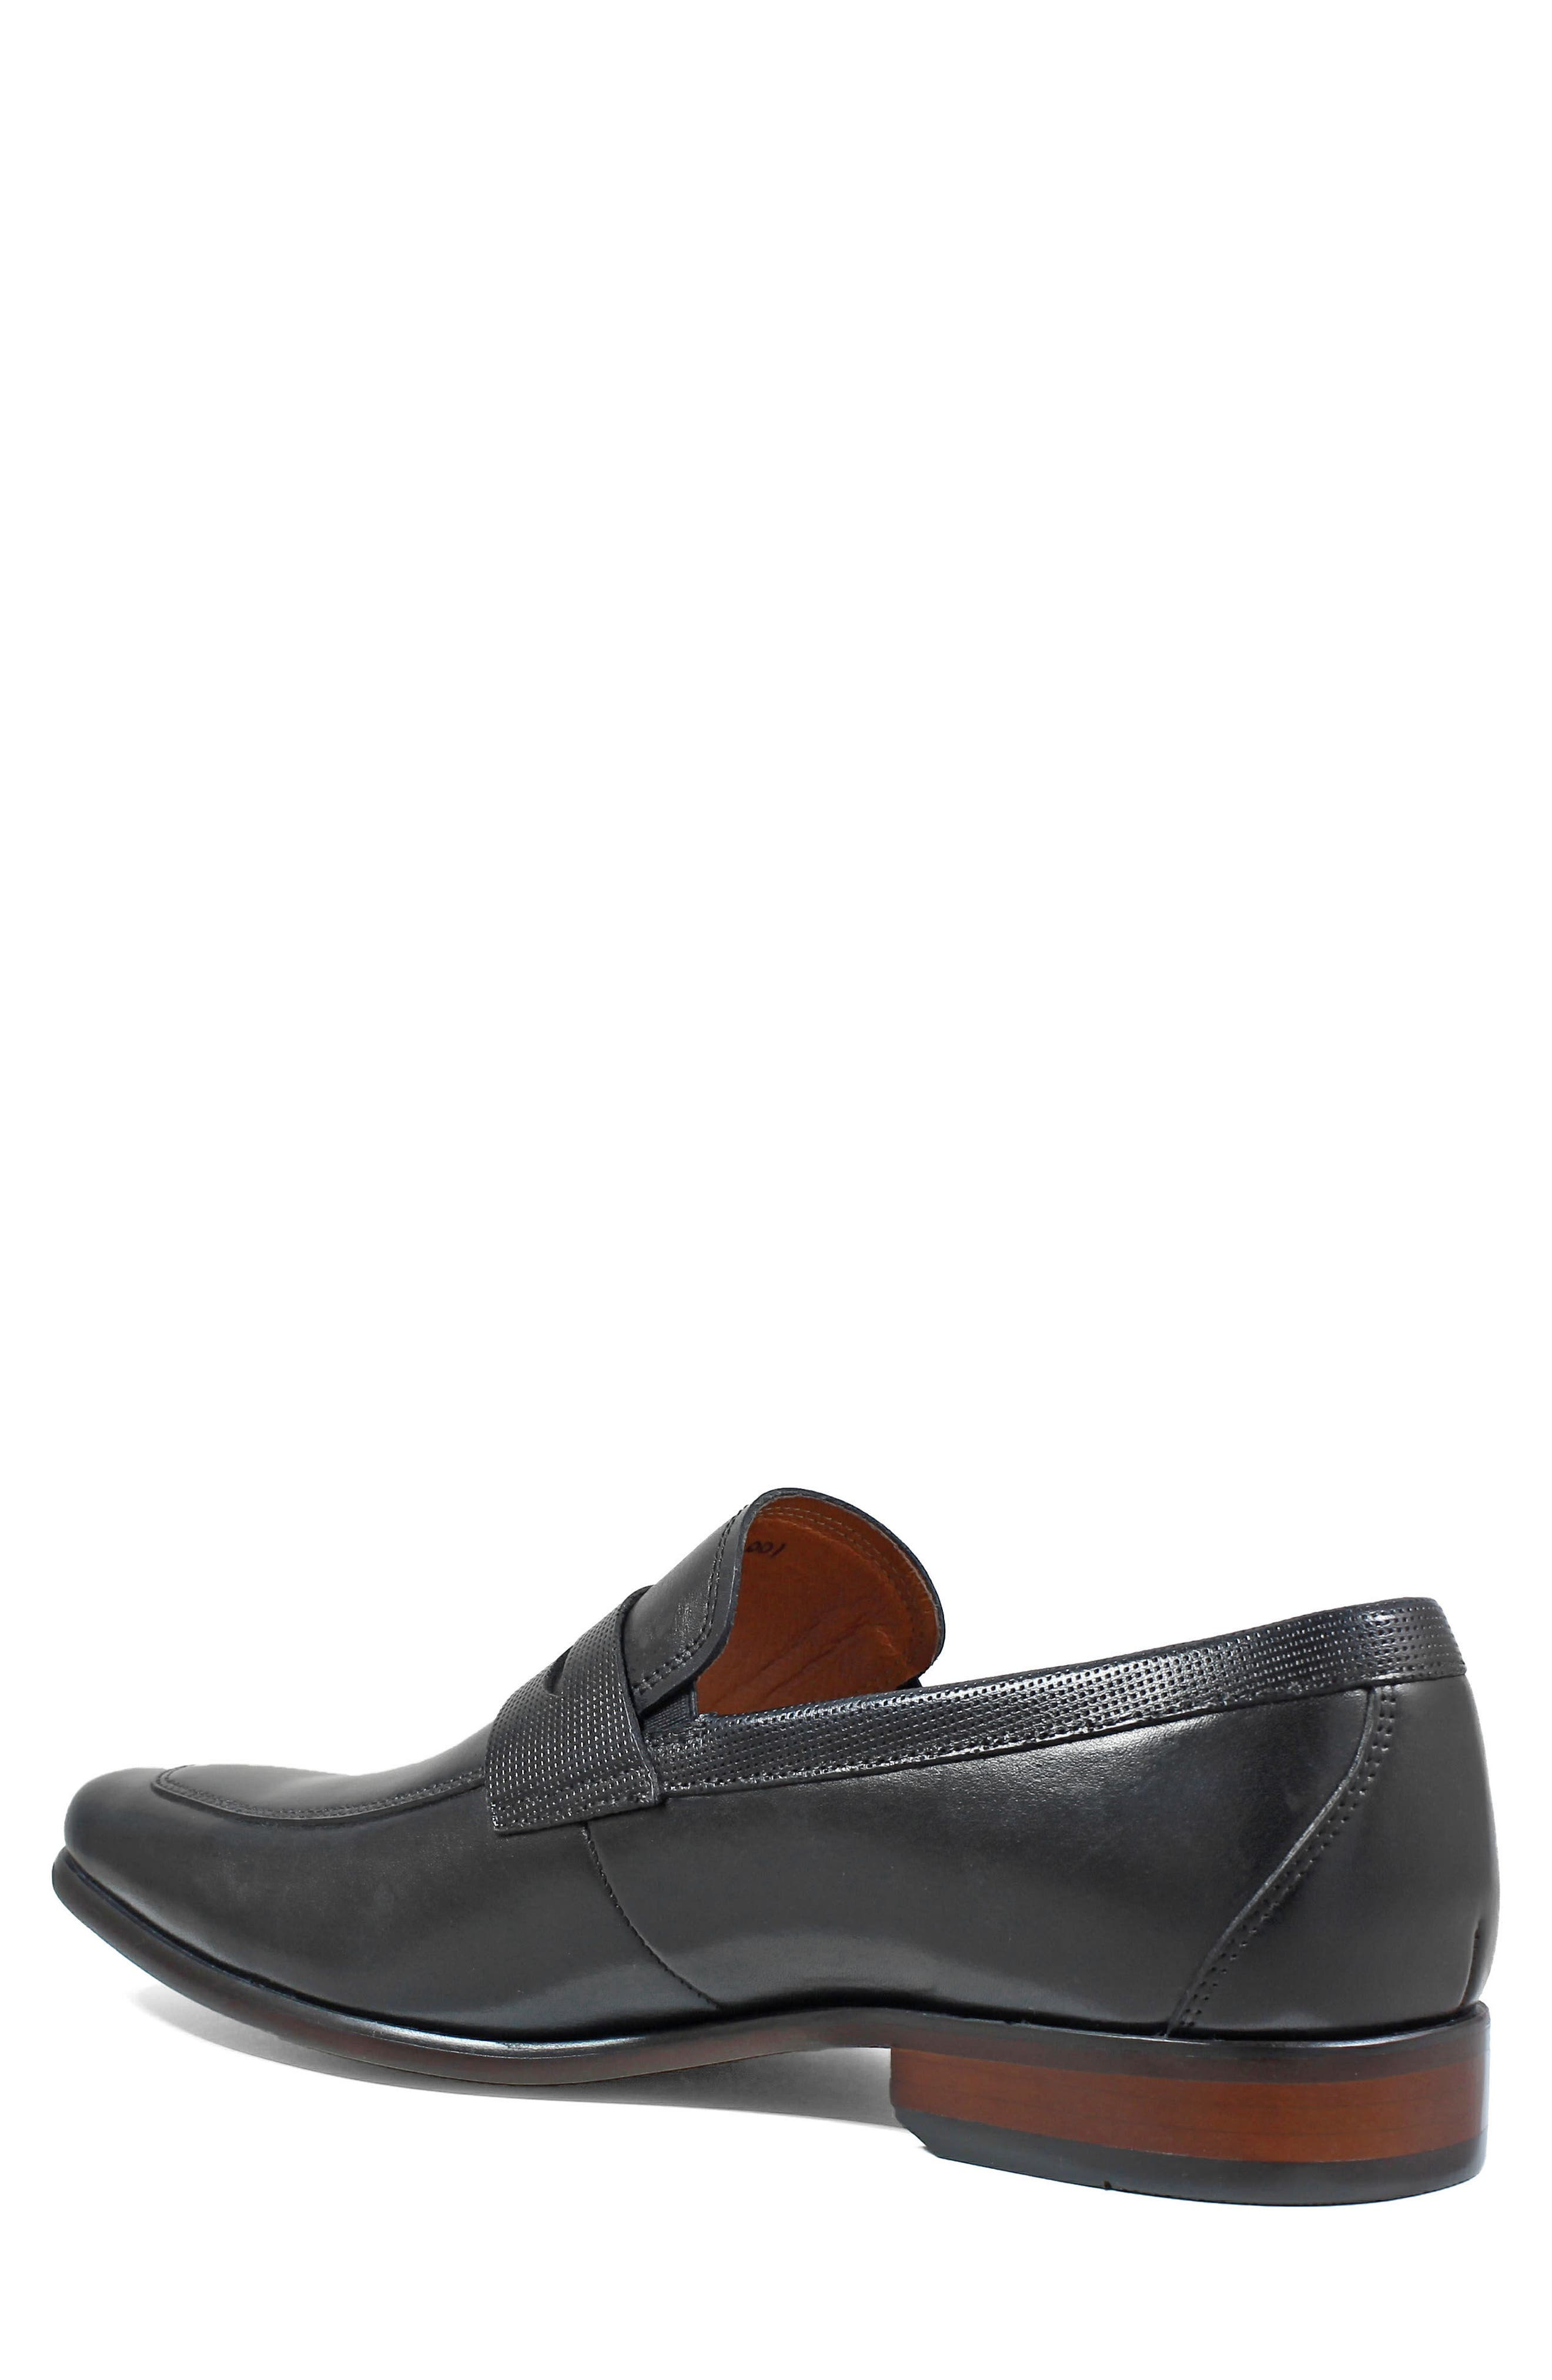 Postino Apron Toe Textured Penny Loafer,                             Alternate thumbnail 2, color,                             Black Leather